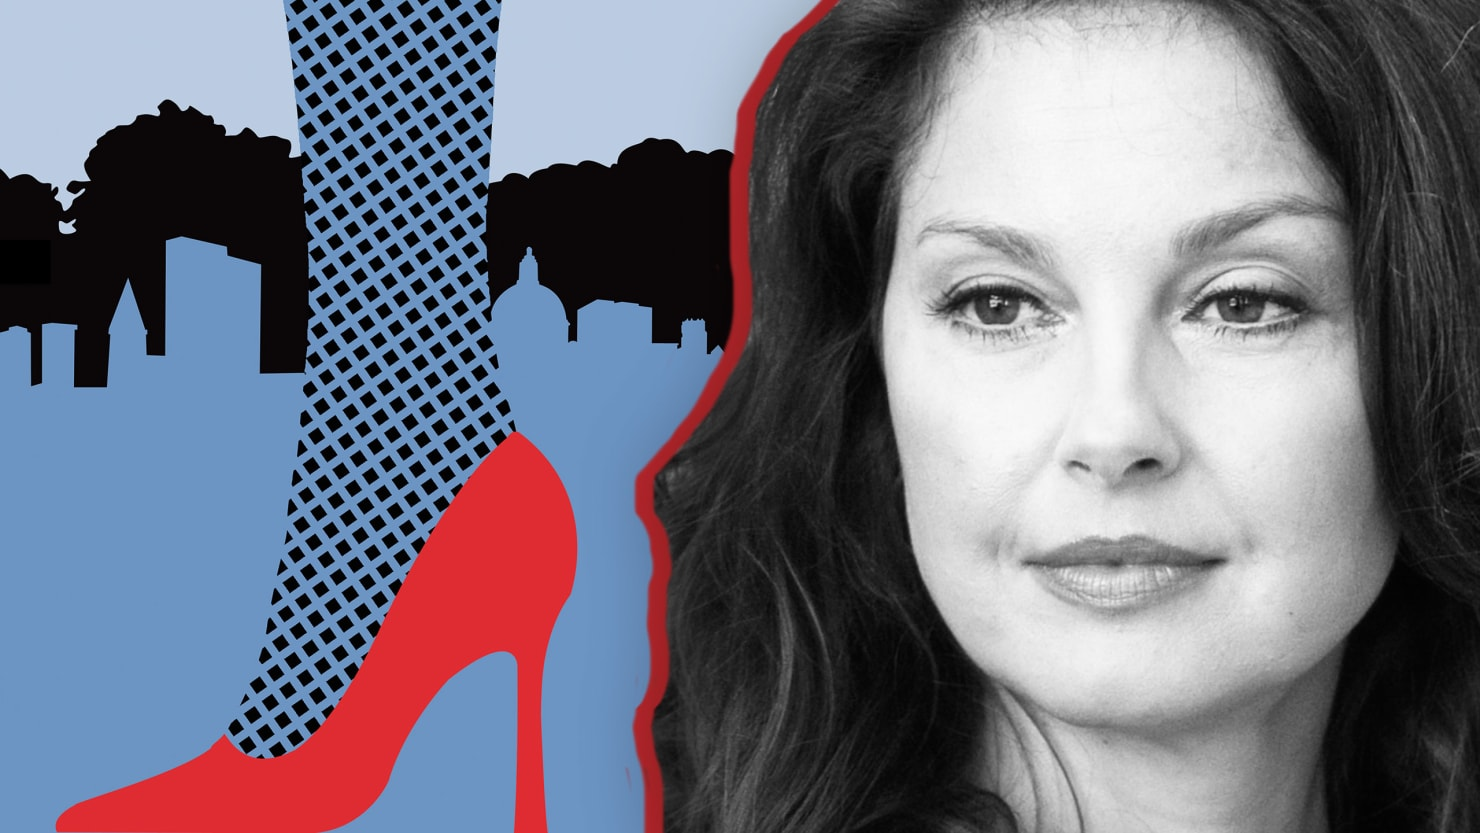 Watch: Ashley Judd Confronted by Sex-Work Activist at The Wing: 'It's Not OK to Not Listen'